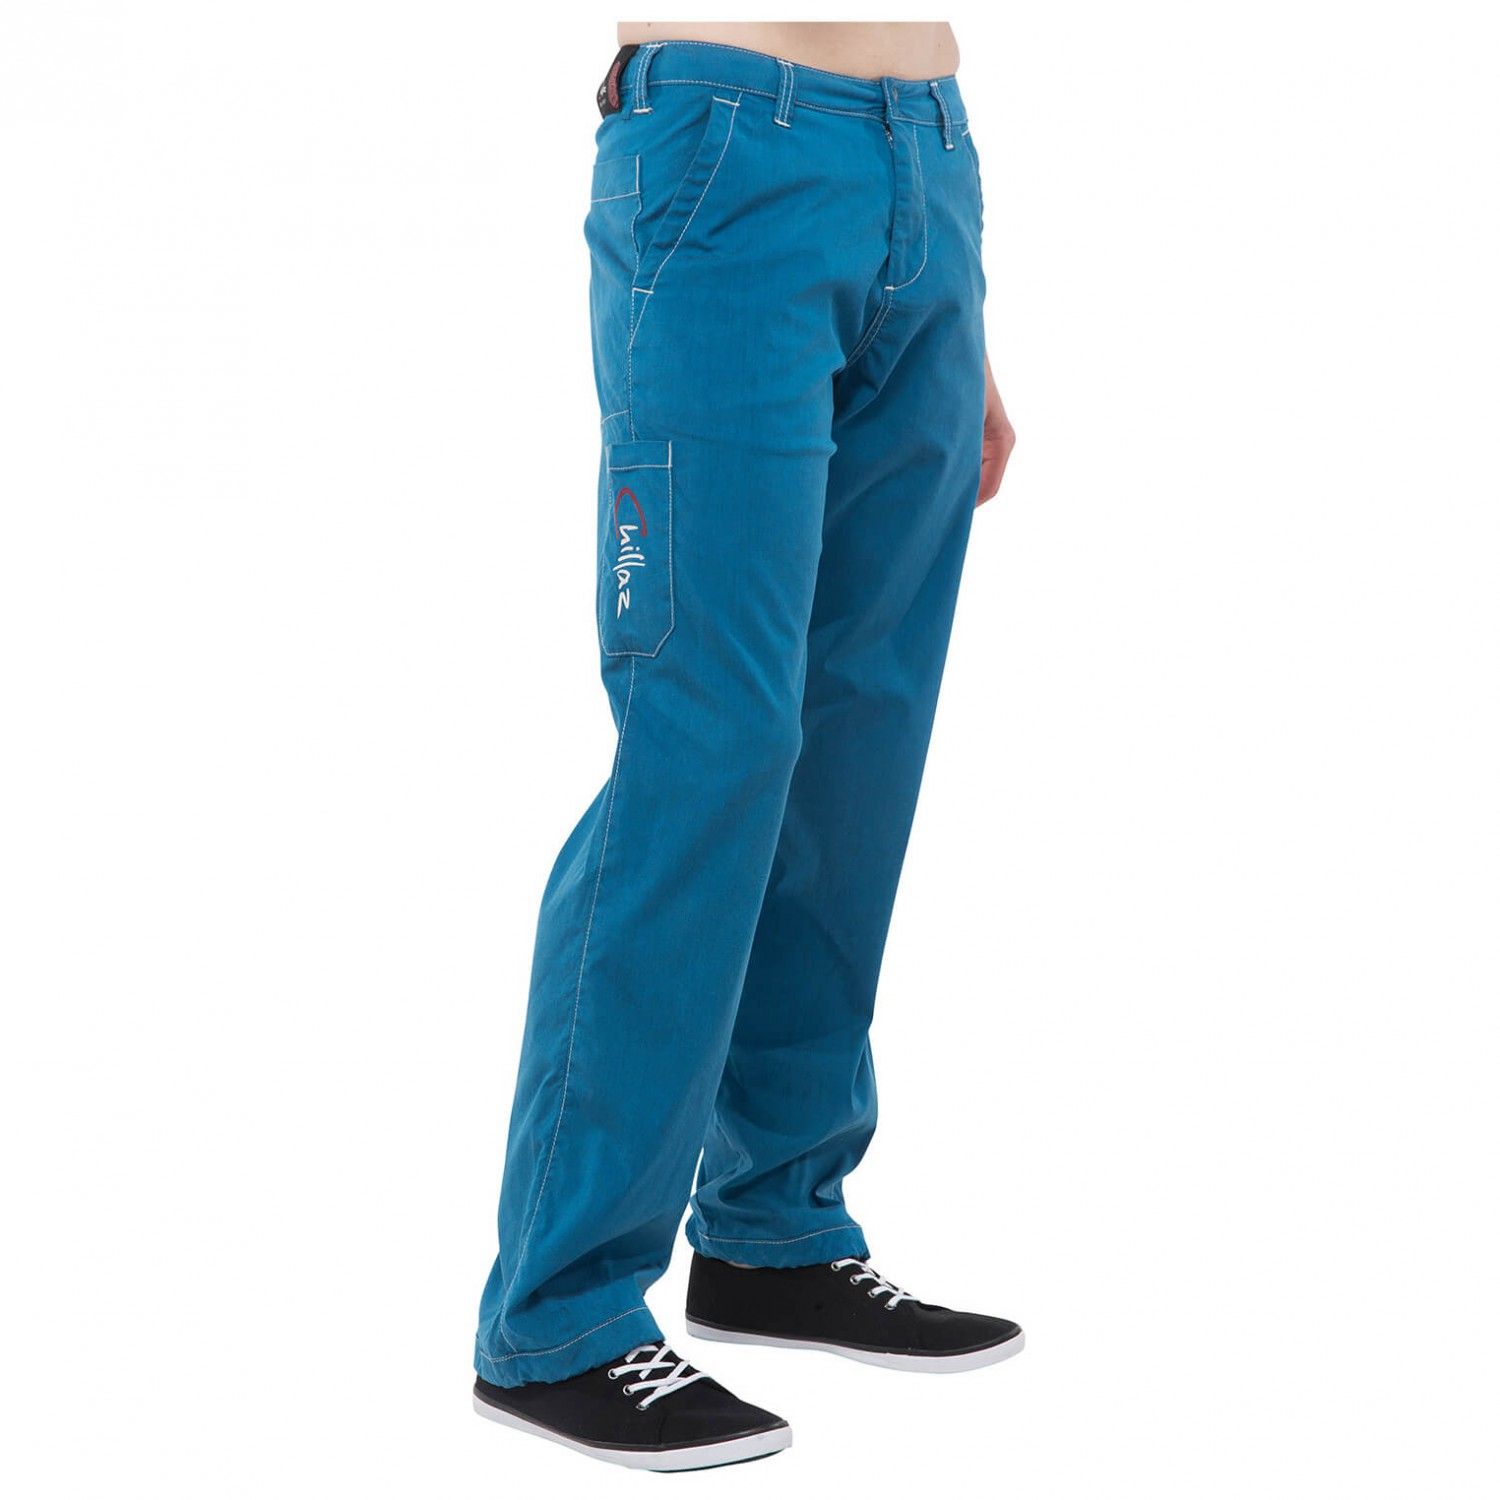 558ae5f7d246c8 Chillaz Dani's Pant - Climbing Trousers Men's | Buy online ...